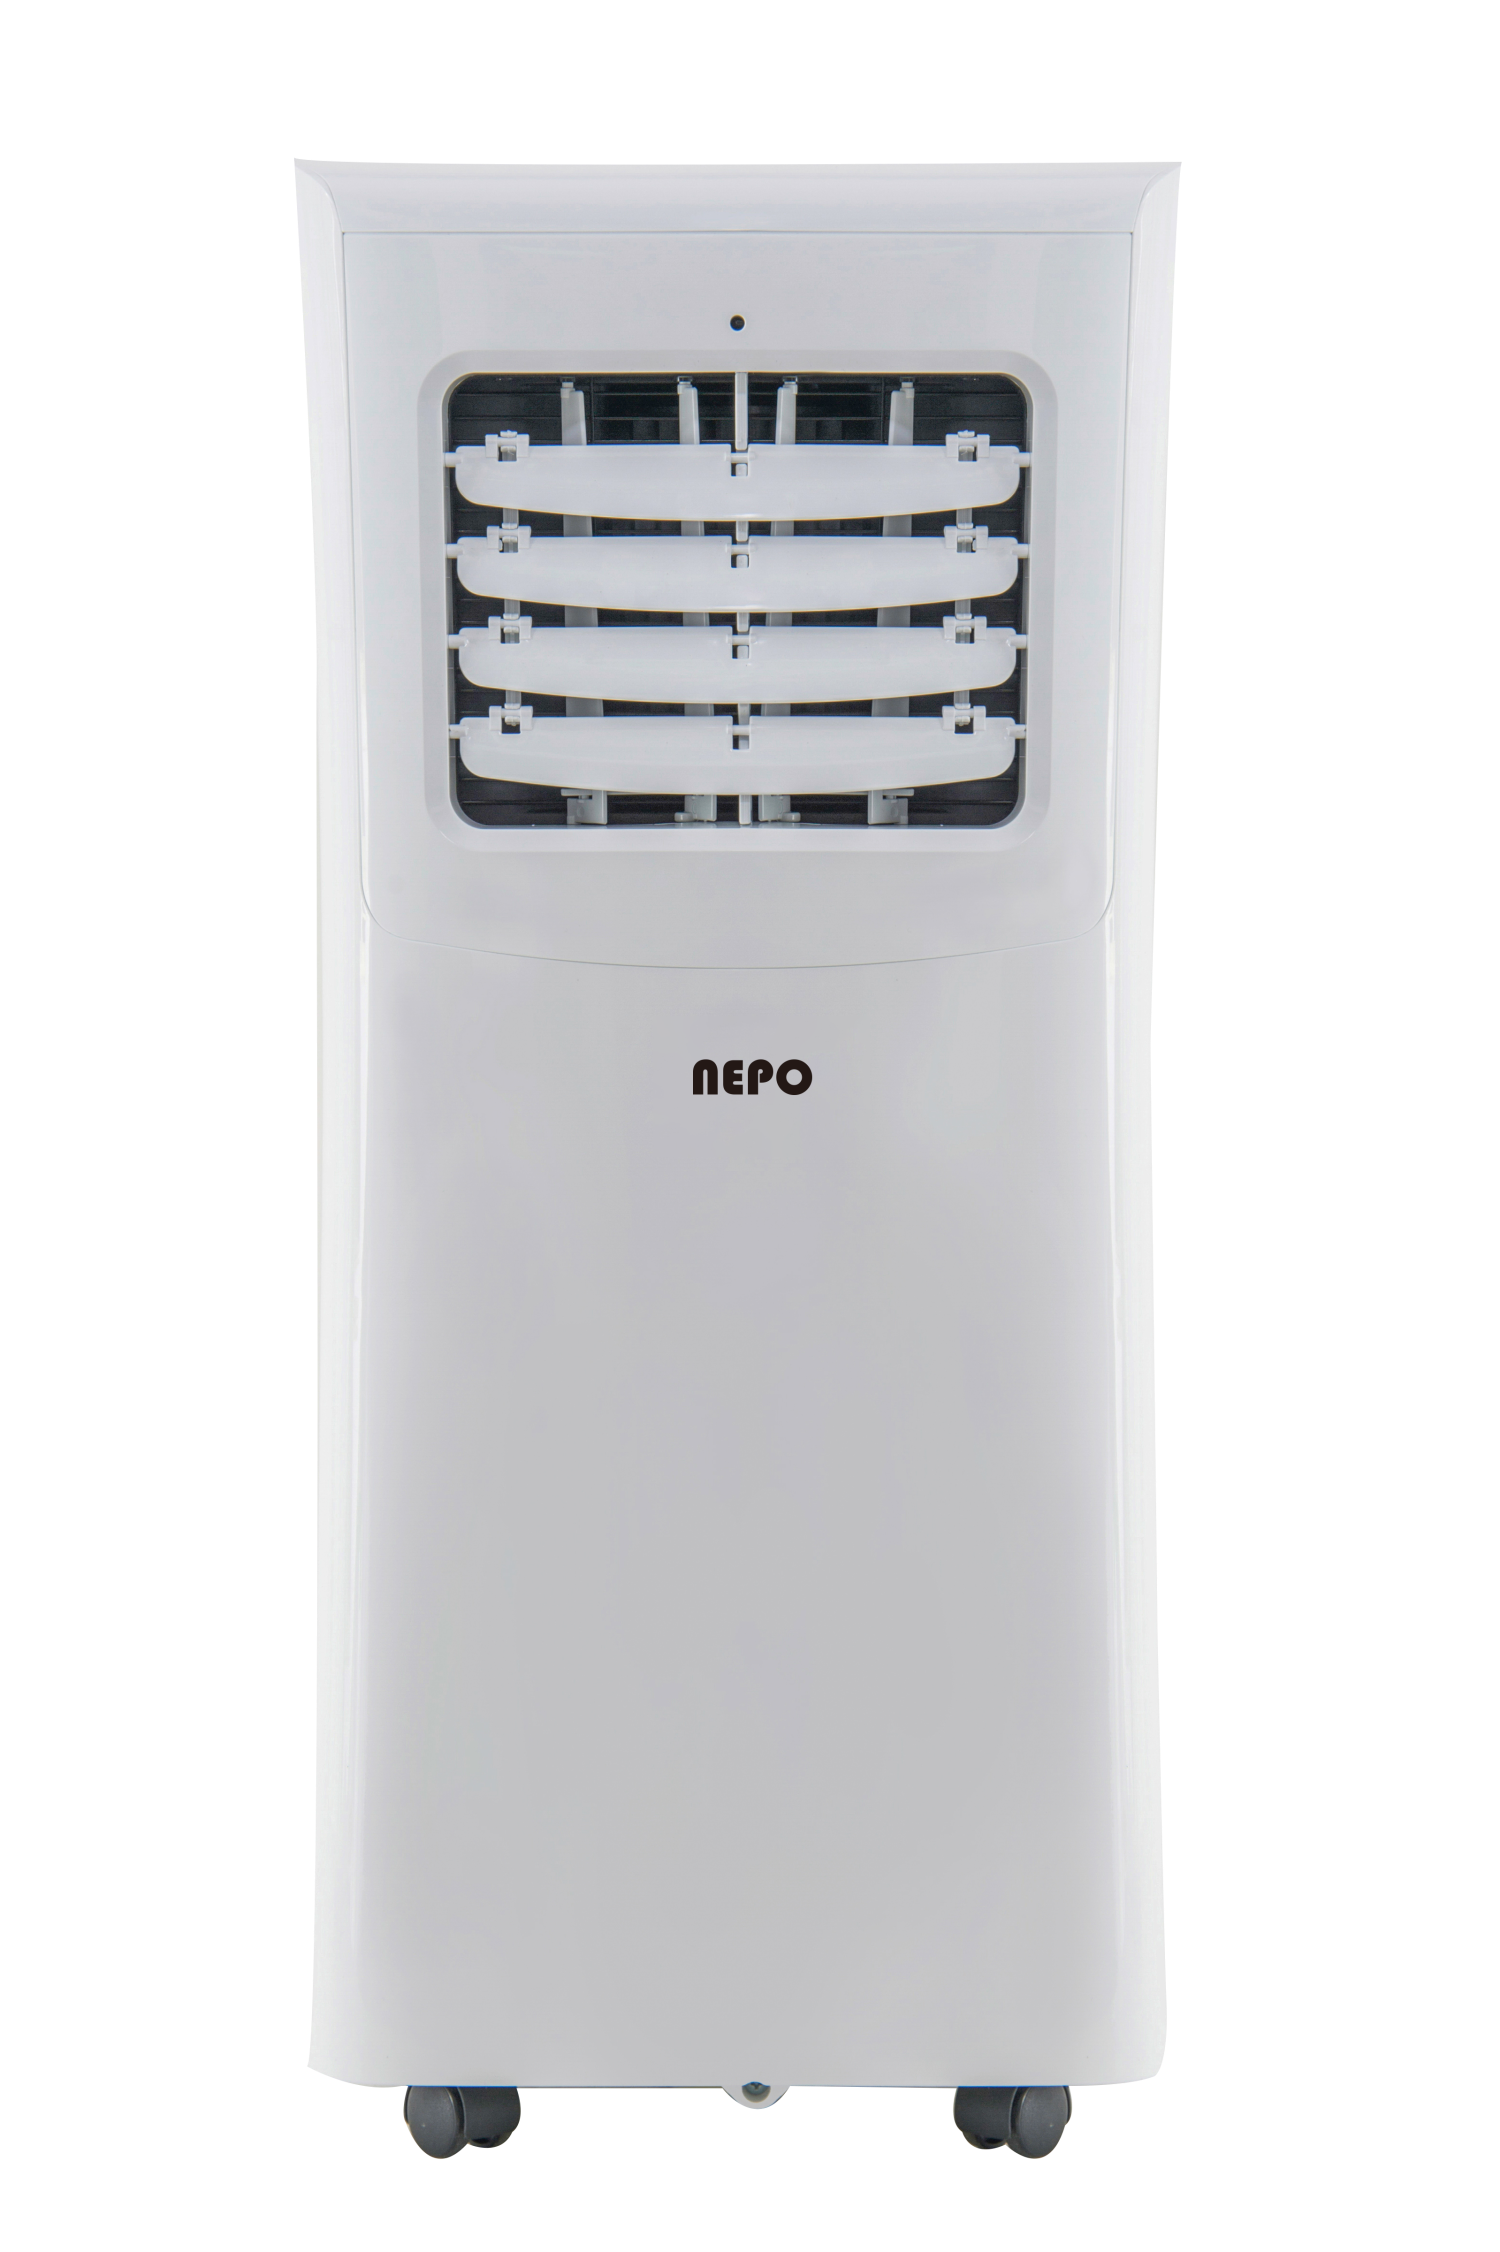 """NEPO NPP-O110C 5,000 BTU (10,000 BTU ASHRAE) 3 in 1 """"Compact Design"""" (Only 47.4lbs)Portable AC with Dehumidifier, Fan and Remote Control"""